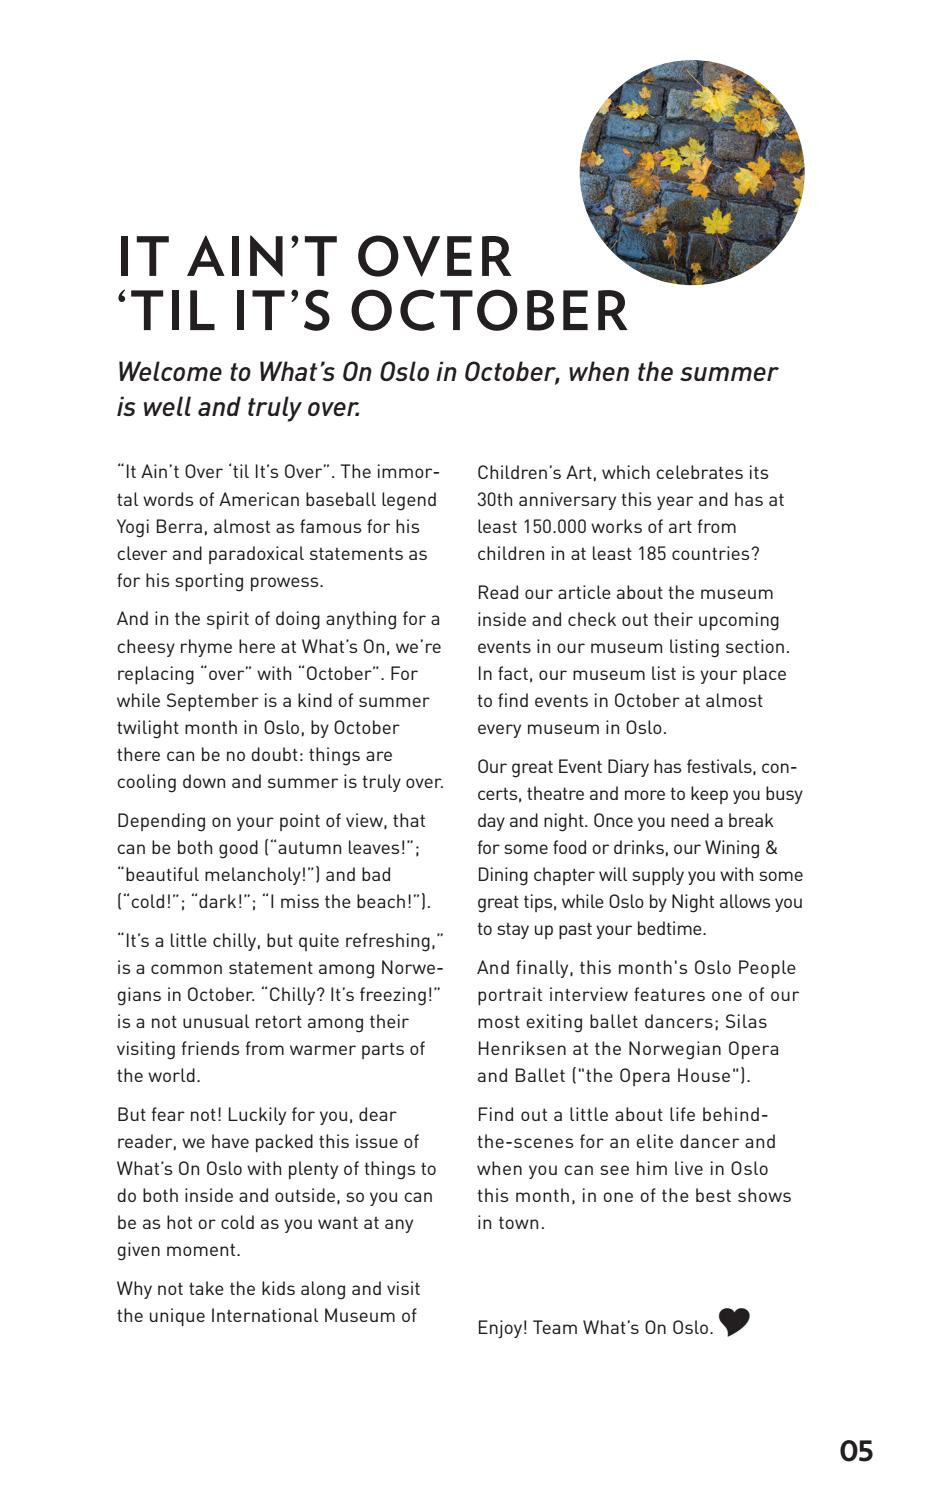 What's on Oslo October 2016 by What's on Oslo - issuu